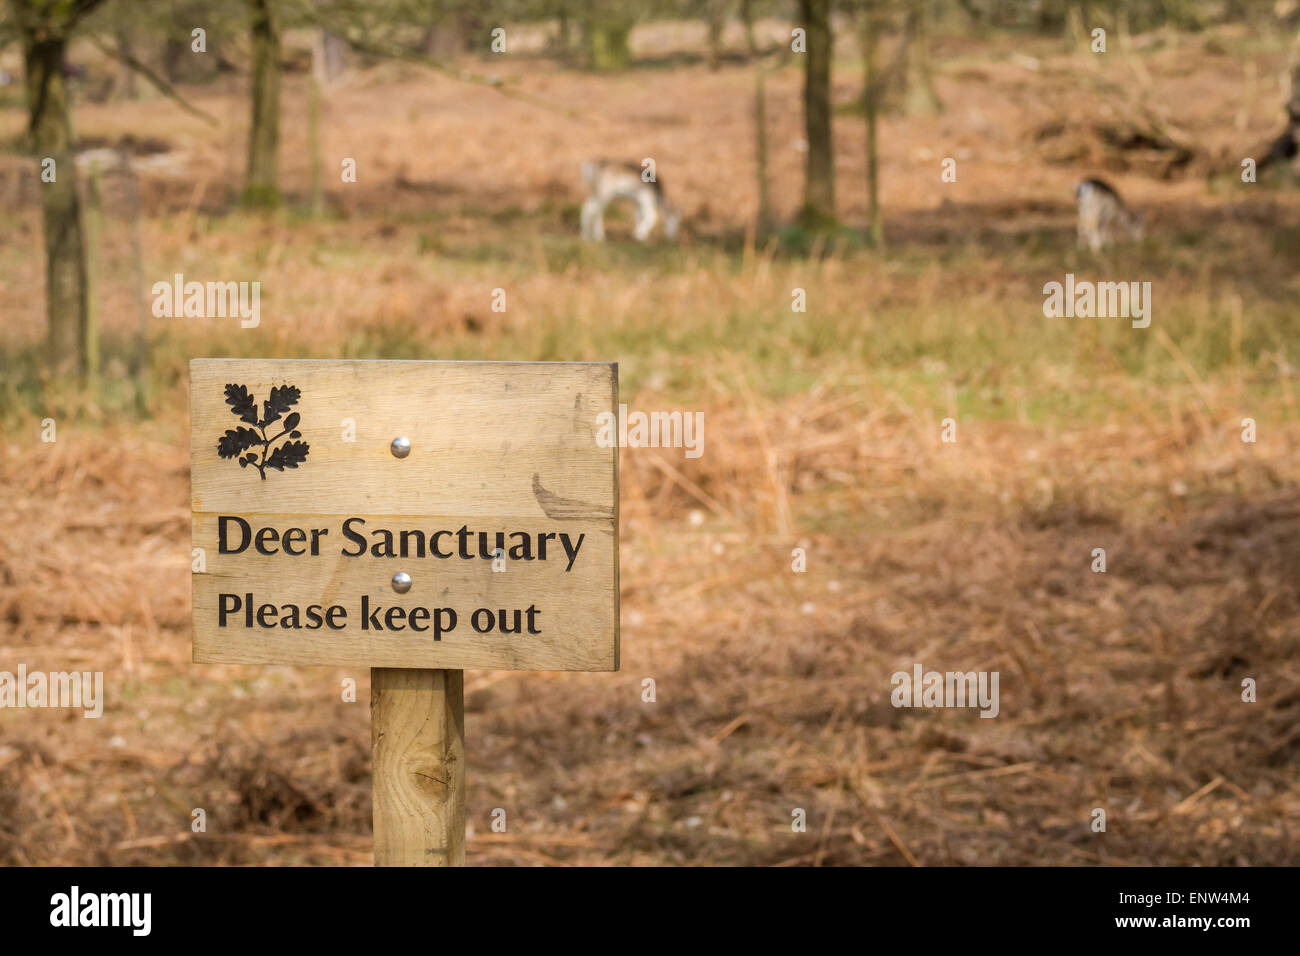 Fallow Deer in the Deer Sanctuary in the grounds of Dunham Massey, Altrincham, Cheshire, England. - Stock Image